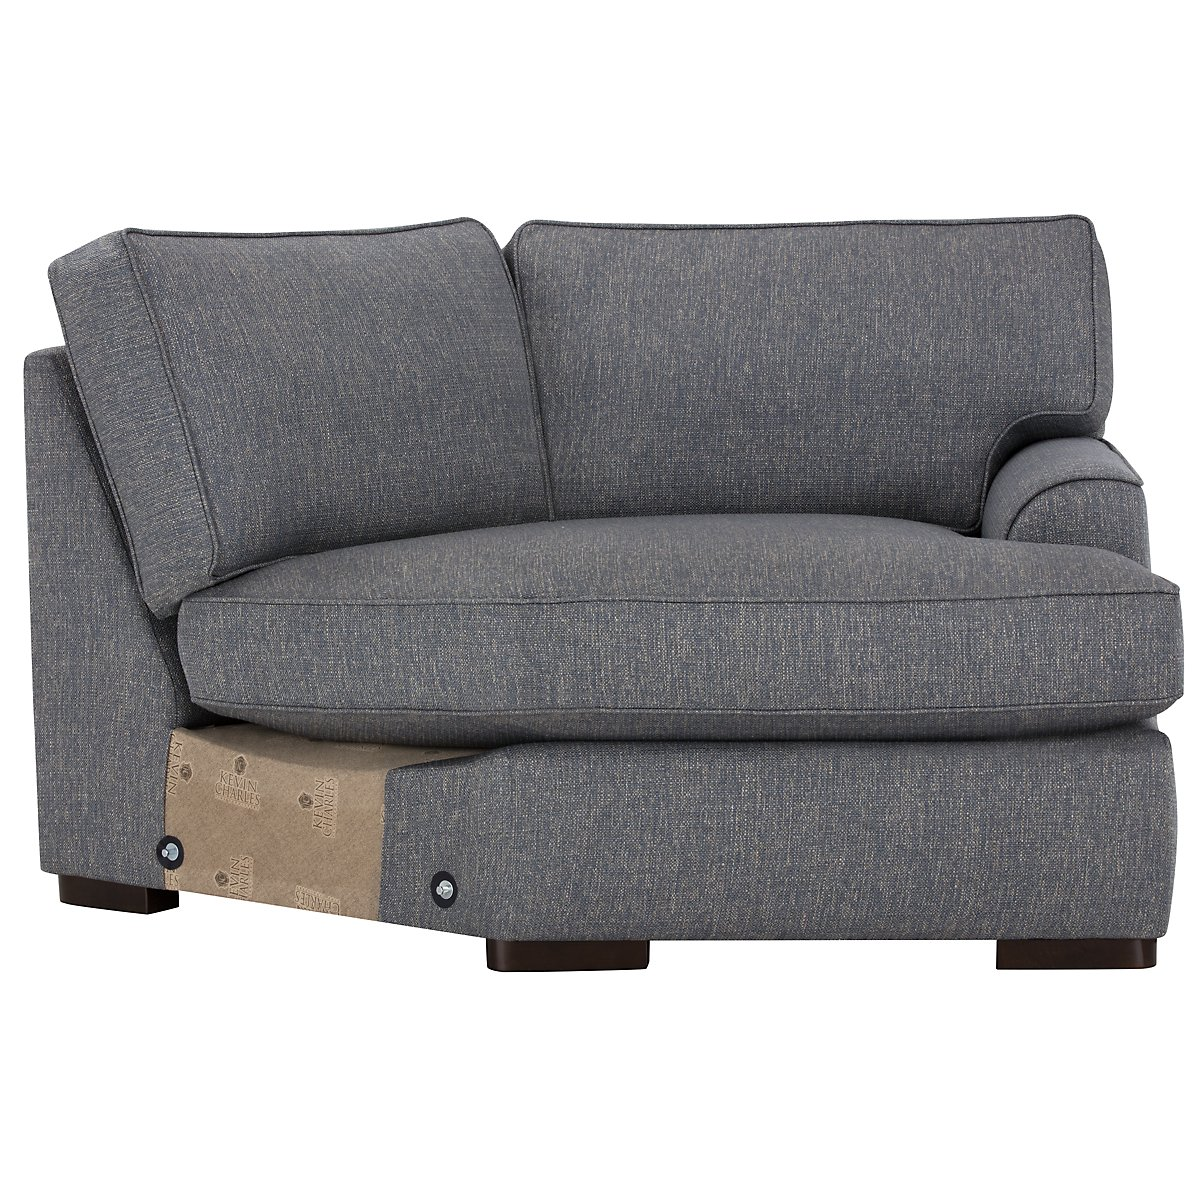 Free Furniture Austin: City Furniture: Austin Blue Fabric Small Right Cuddler